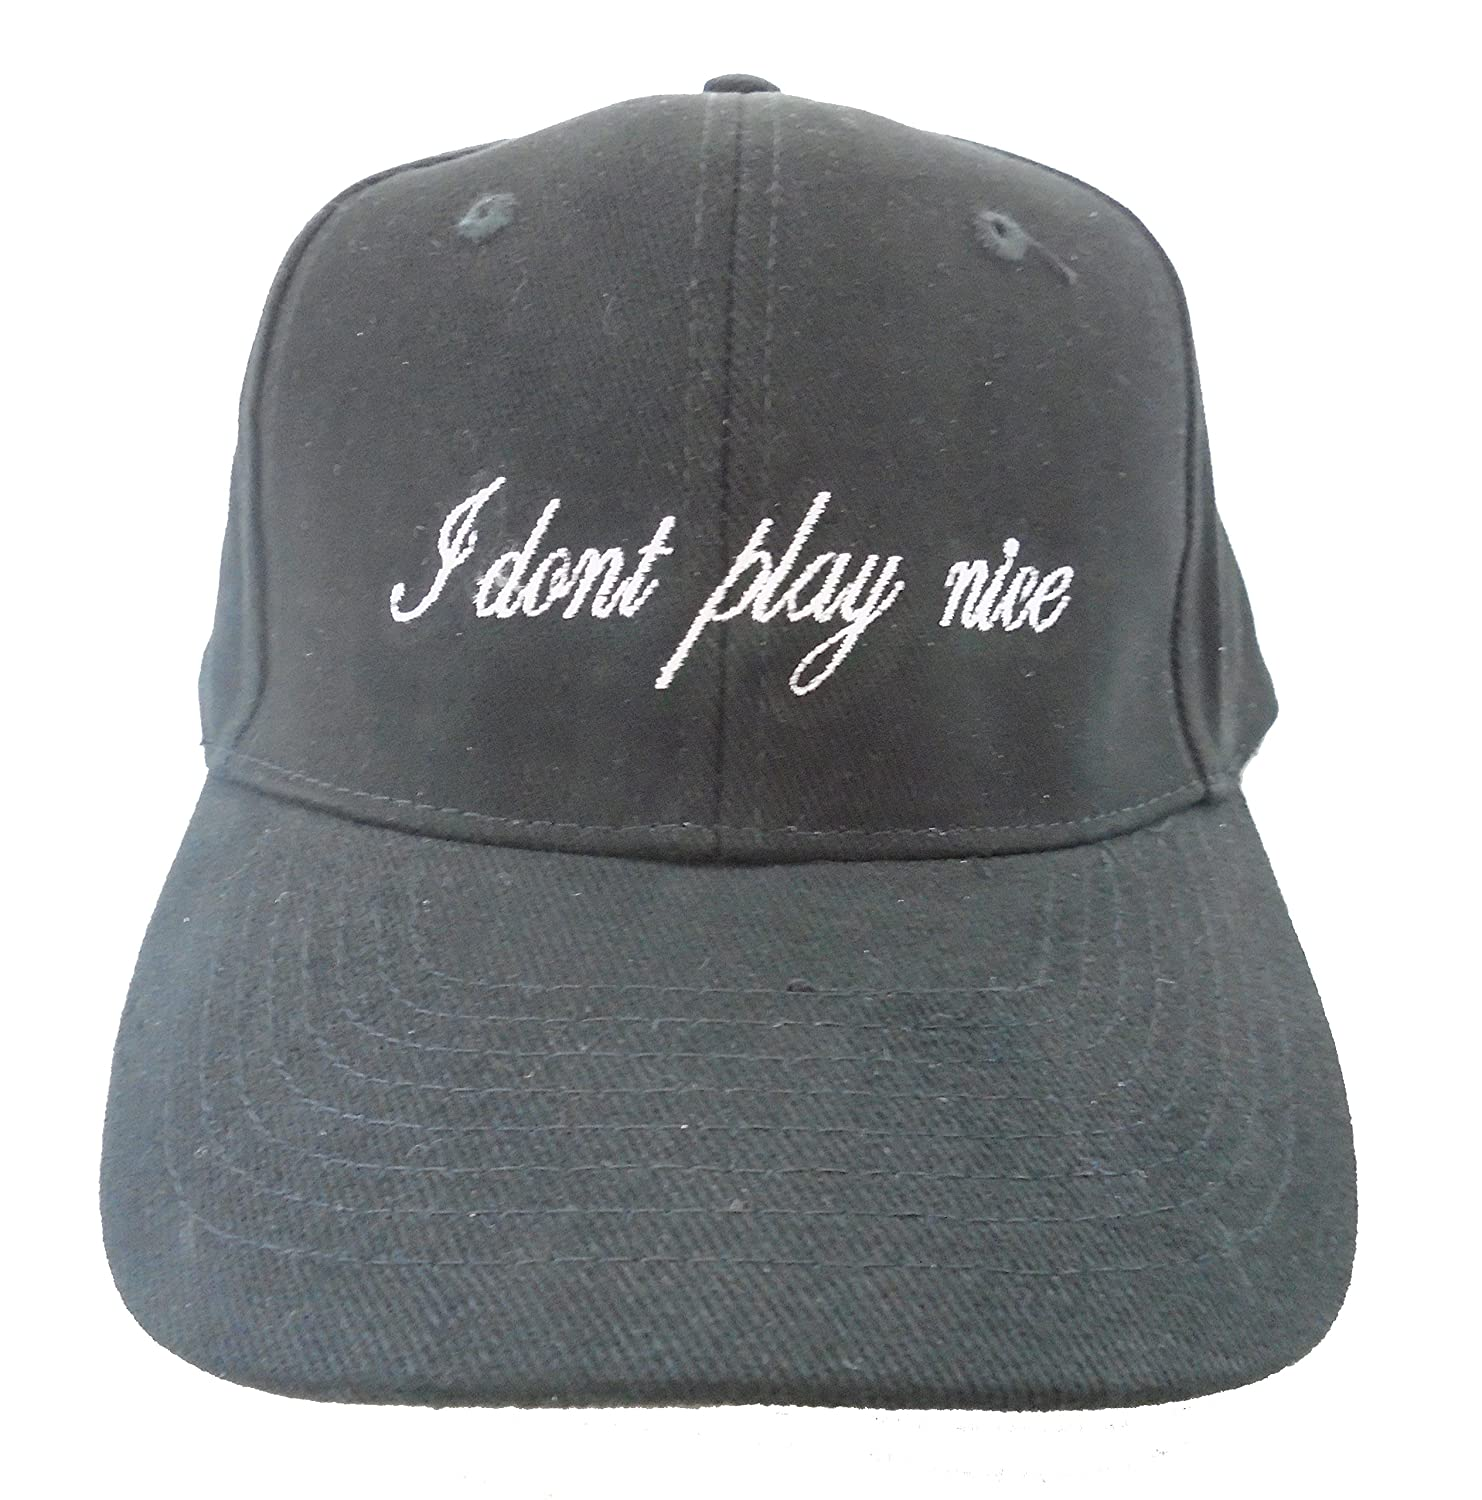 I Dont Play Nice Embroidered 6 Panel Hat Baseball Cap Tumblr Pintrest Trending